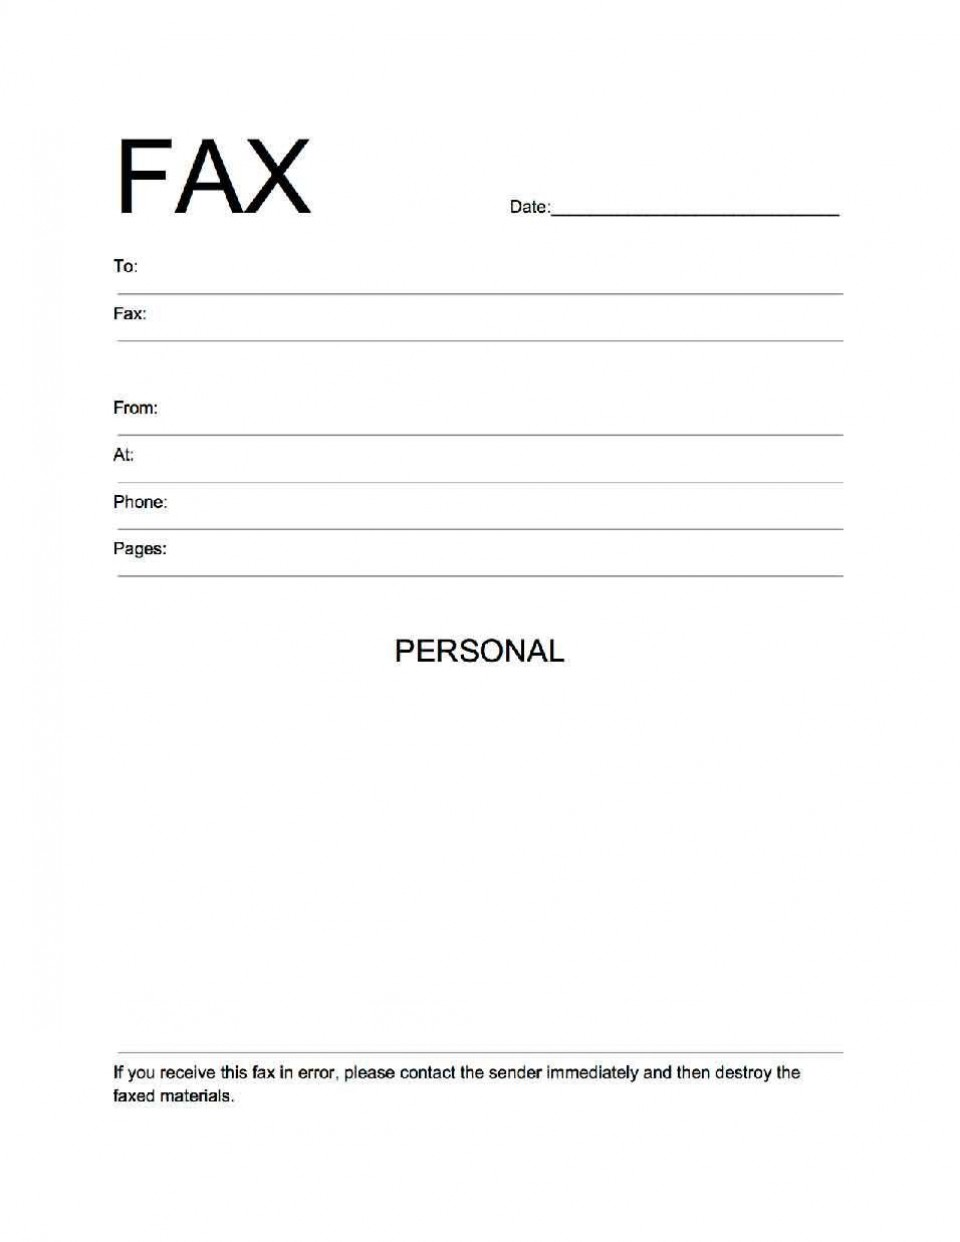 000 Stirring General Fax Cover Letter Template Sample  Sheet Word Confidential Example960